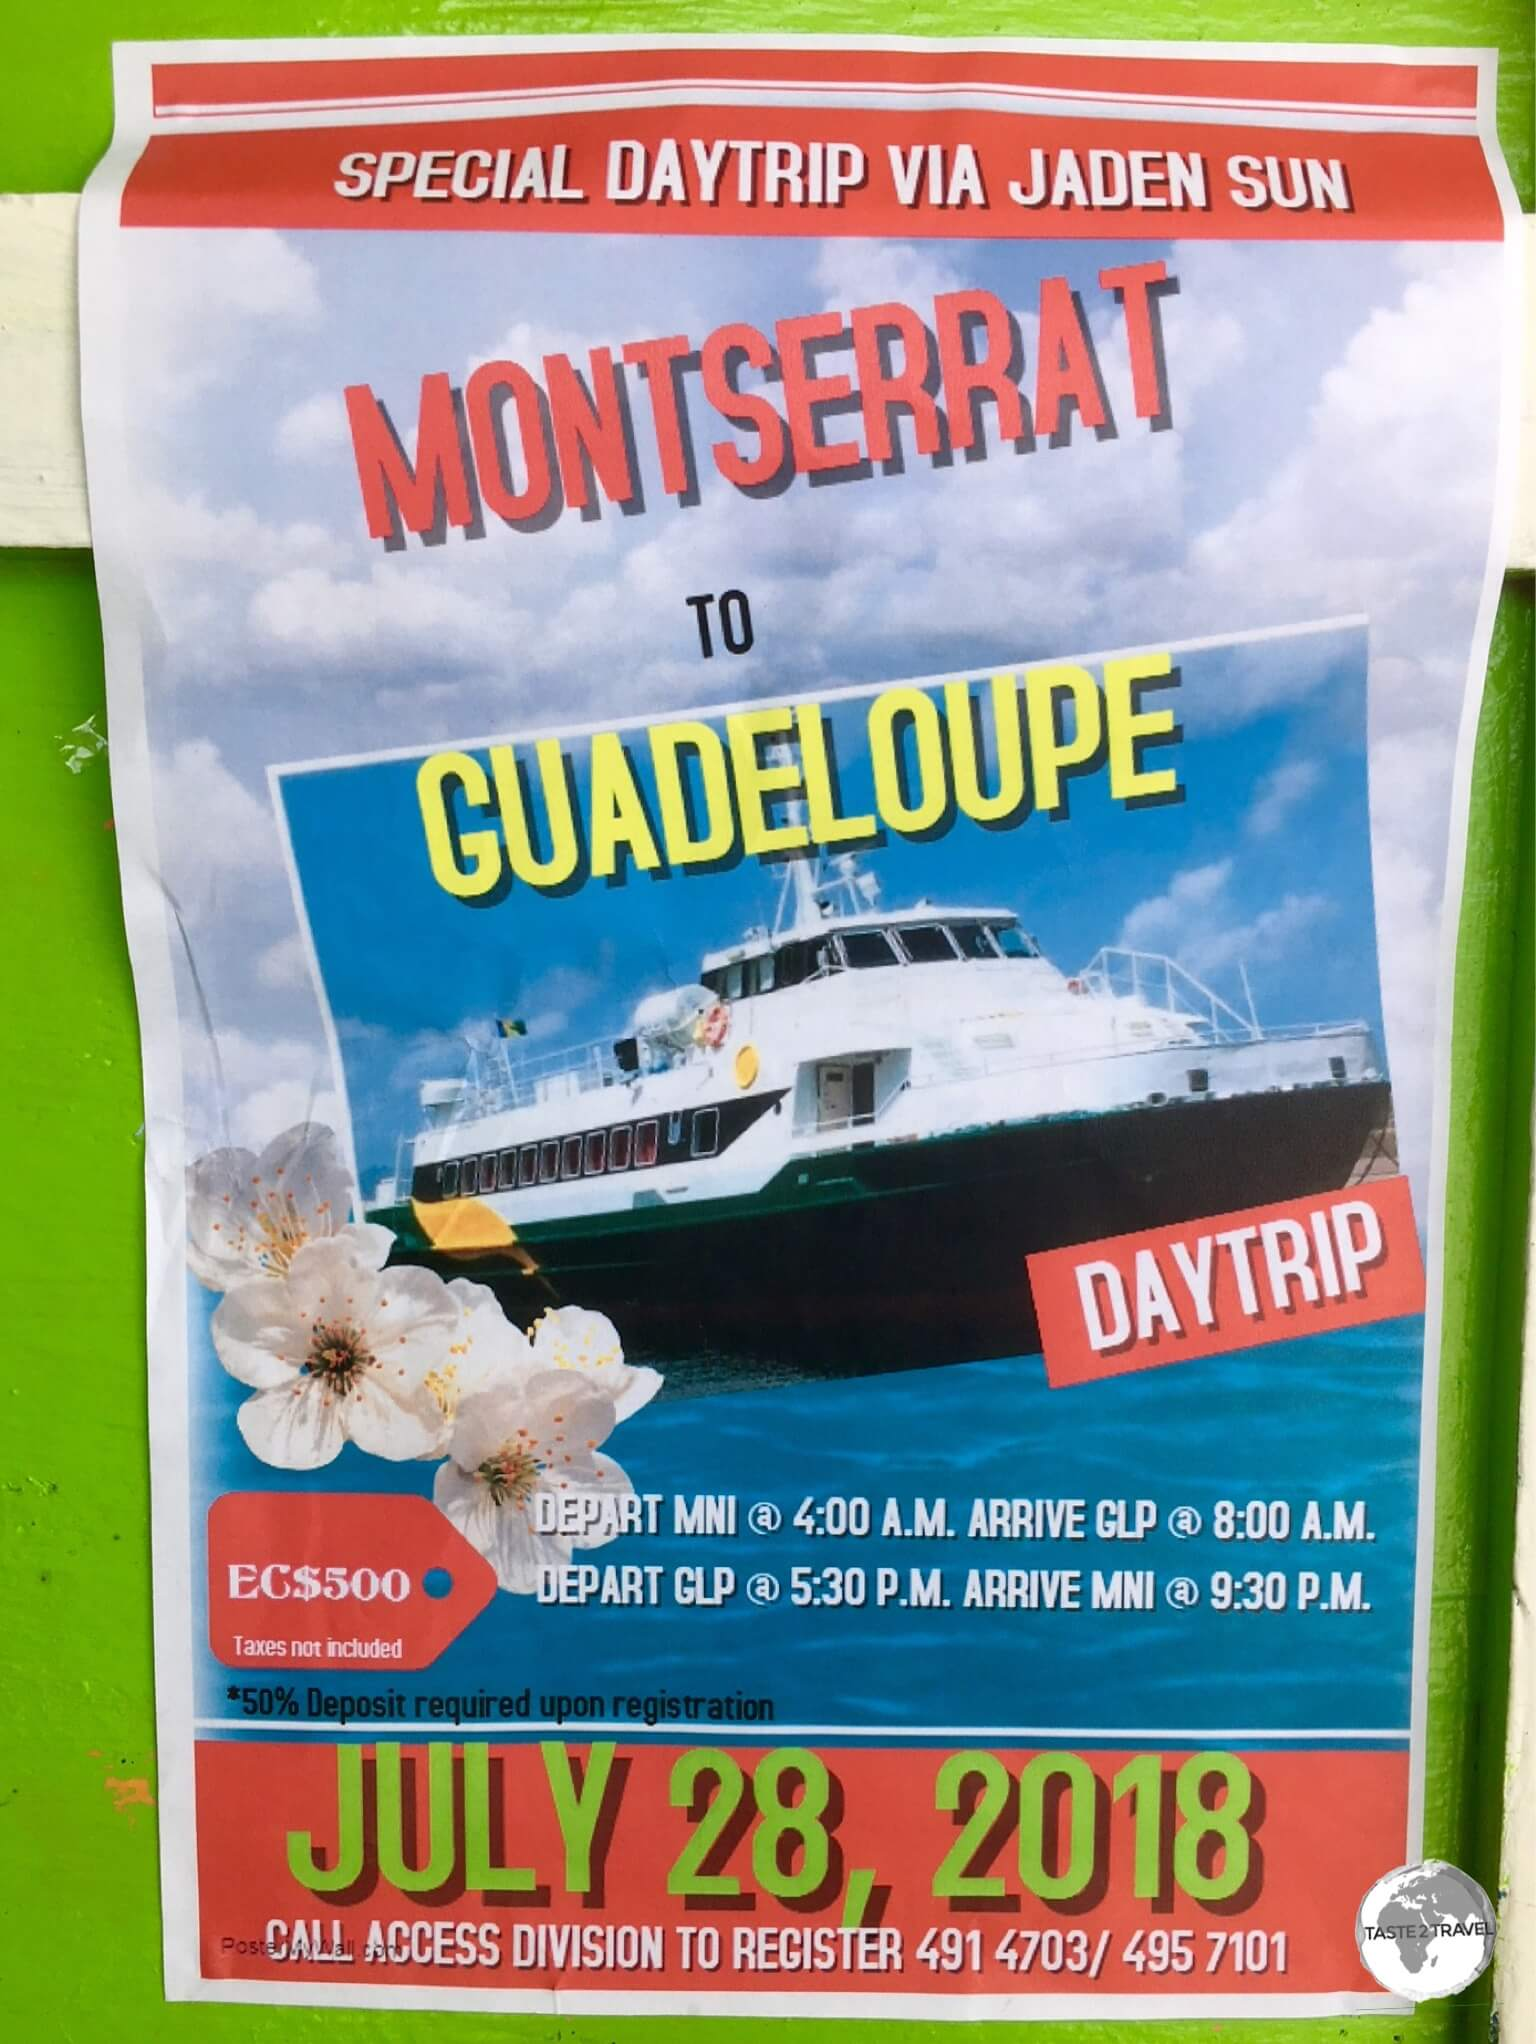 An advertisement announces a charter trip to Guadeloupe on the Jaden Sun.